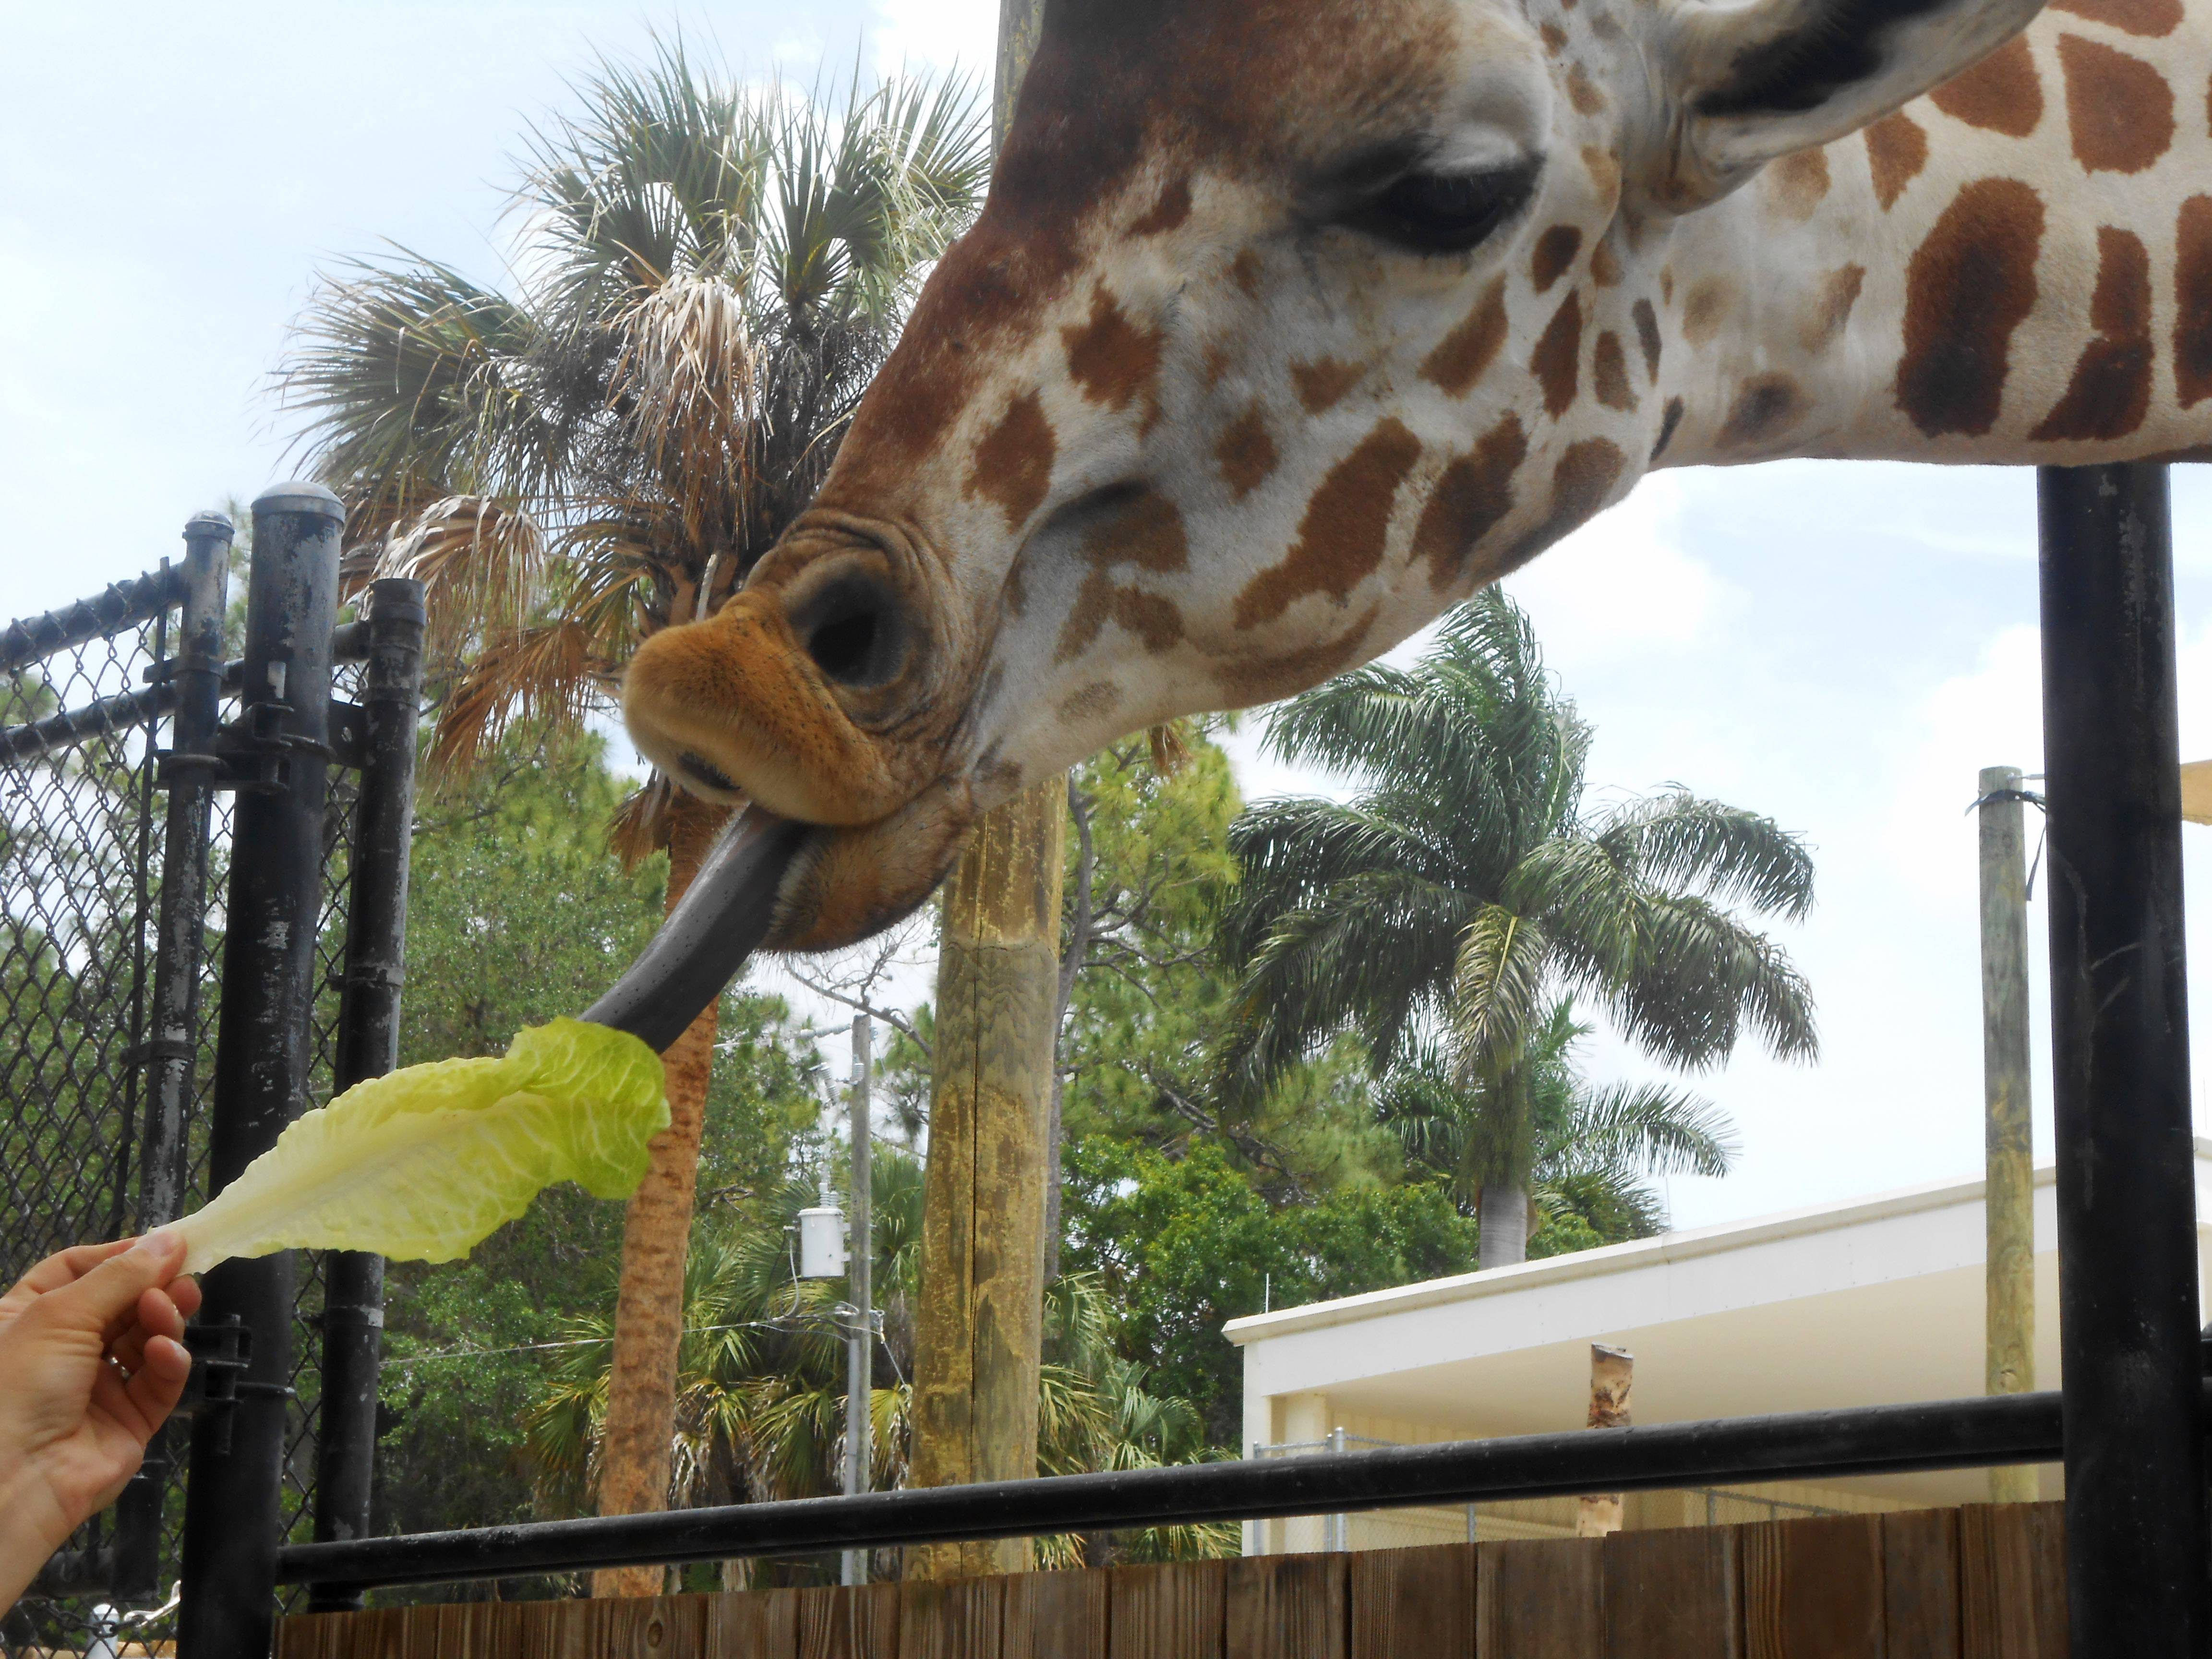 A giraffe feeds on lettuce at the Naples Zoo in Naples, Florida in May. Giraffes use their tongues to loop around the lettuce before they put it in their mouths.